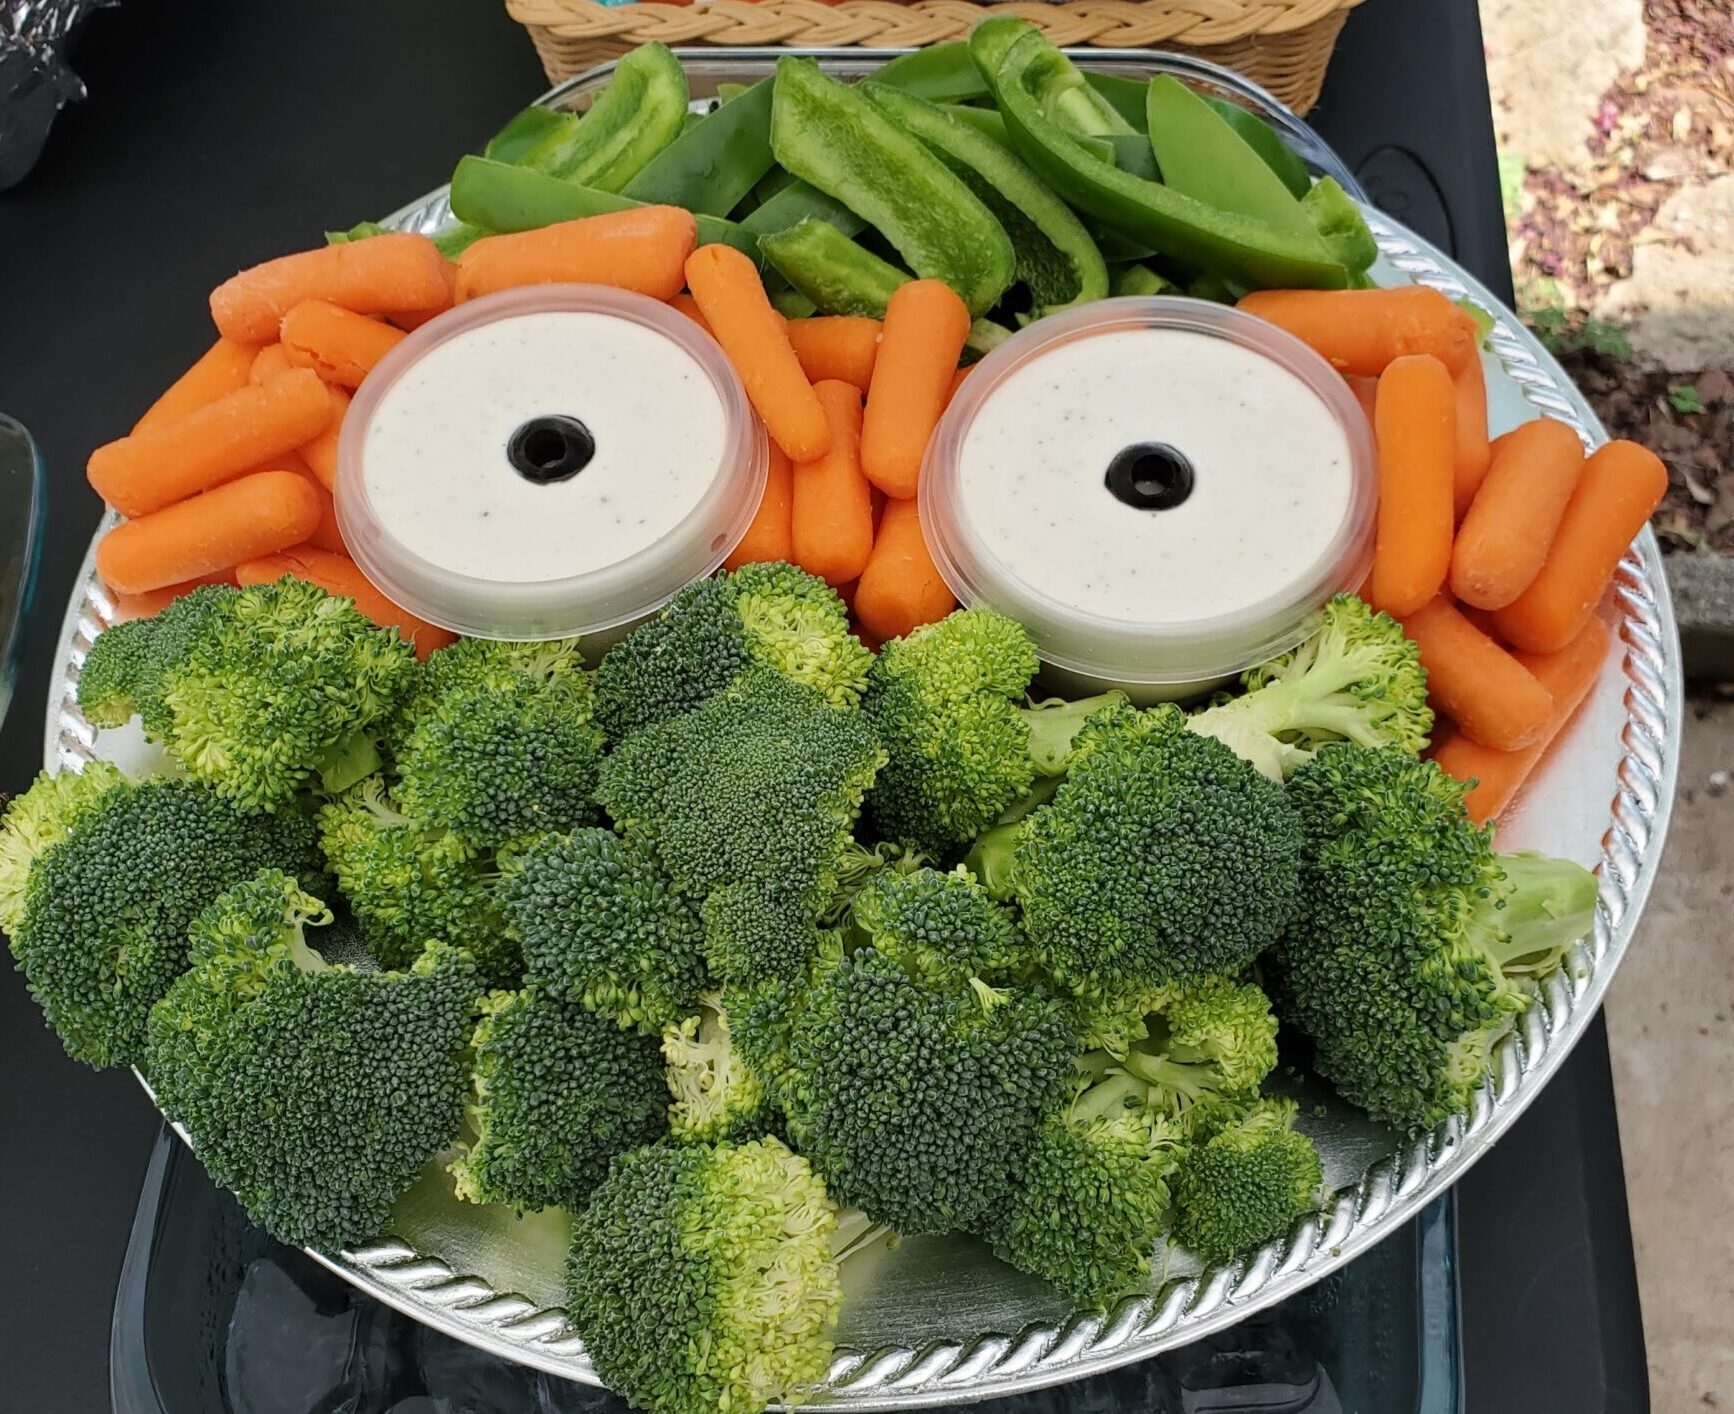 A seasonal, eco-friendly party food: A Veggie Tray made to look like Michelangelo with Broccoli and Green Peppers for the face, carrots for the mask, and cups of dip with olives for the eyes.